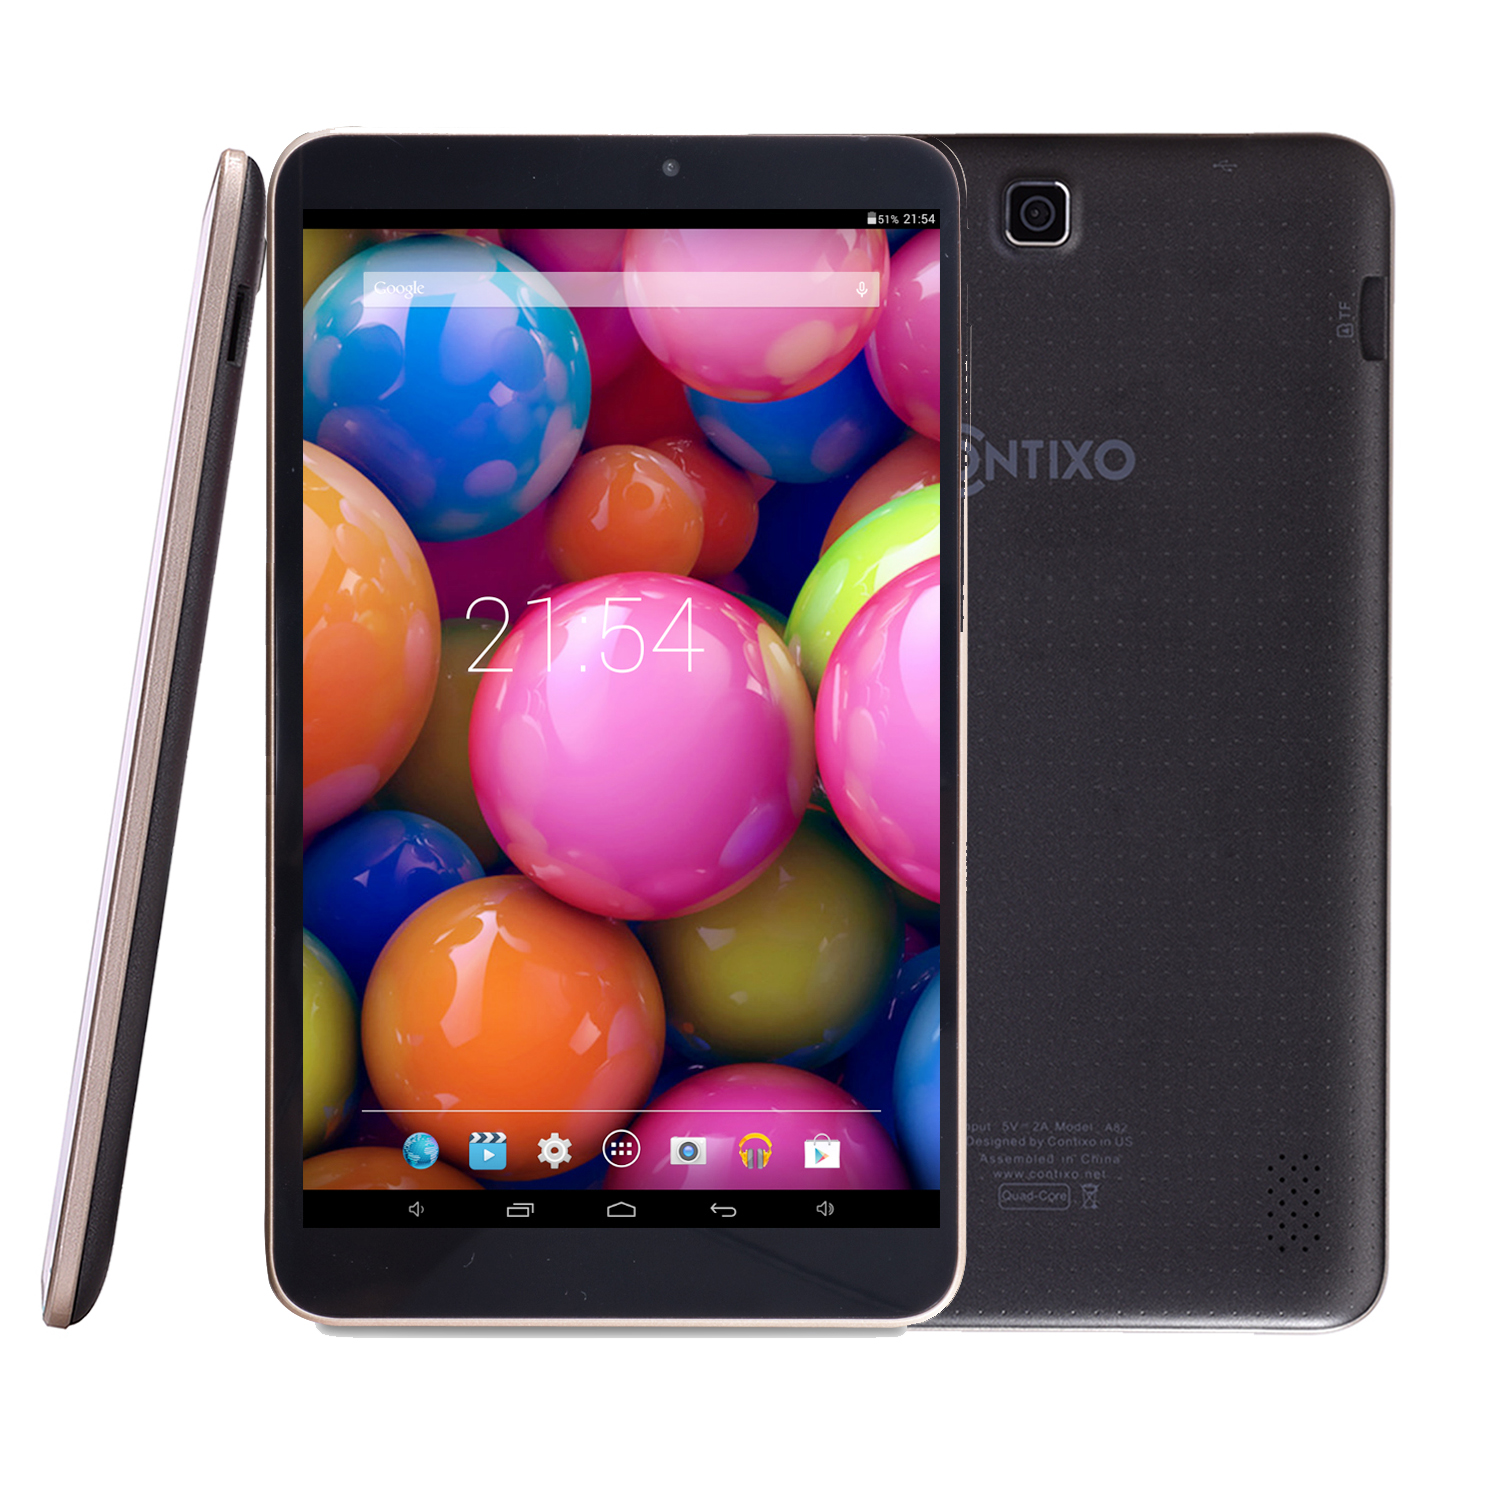 Contixo 8'' Quad Core Android 4.4 Tablet, IPS Screen 1280x800 Display, 1GB Memory, 8